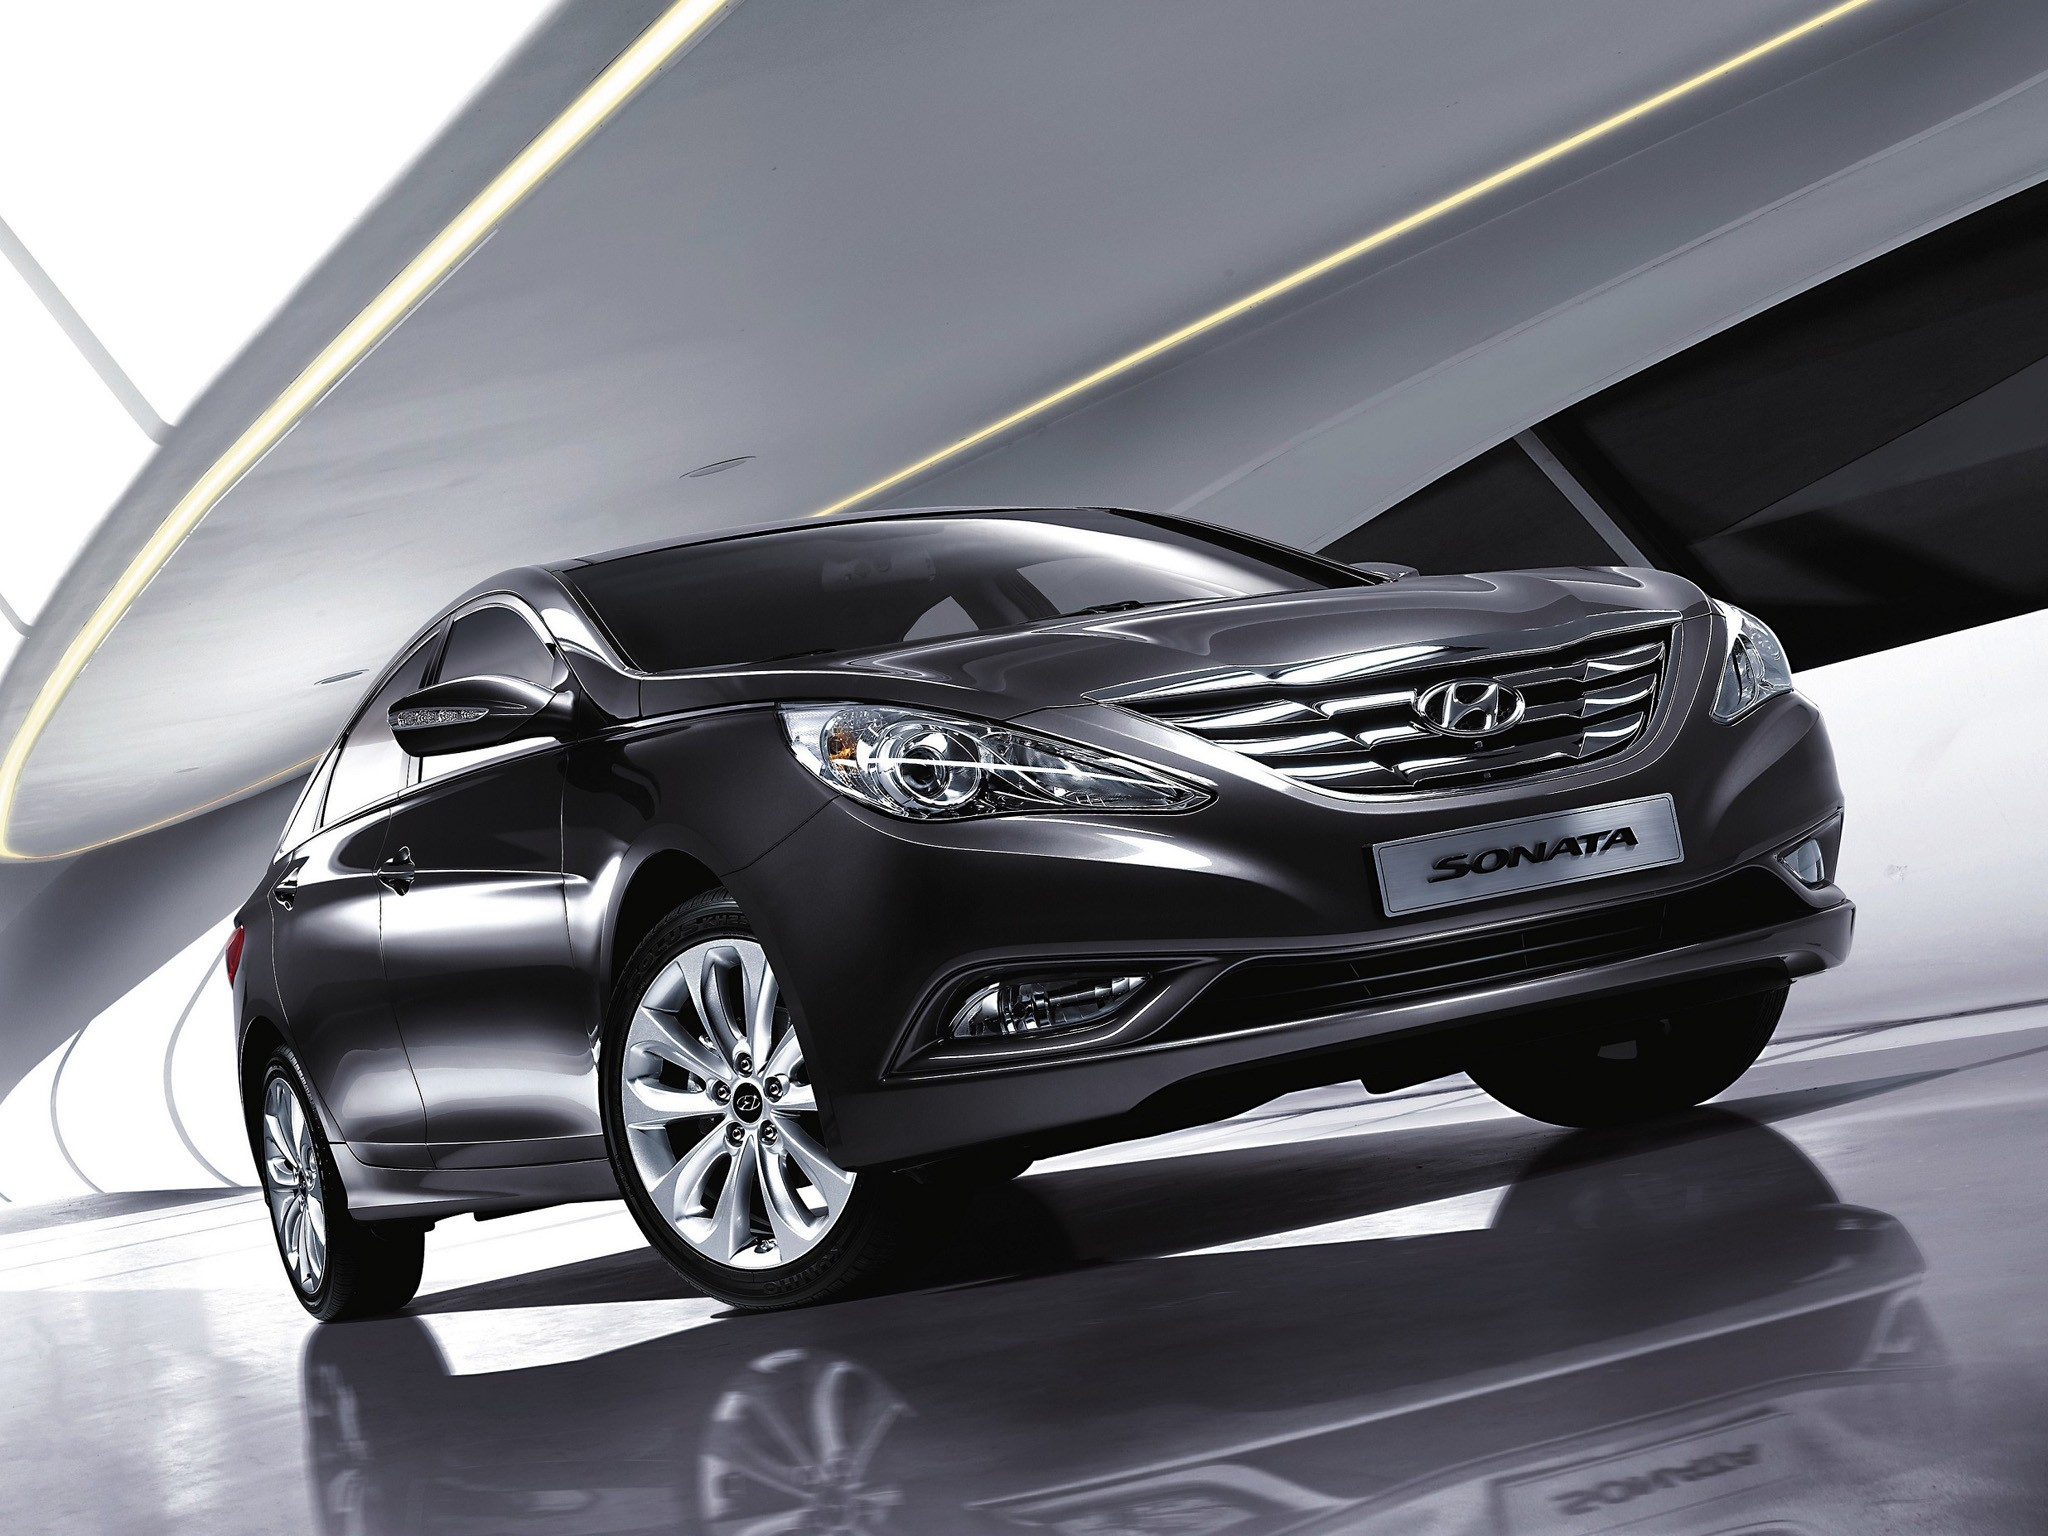 Hyundai Sonata I on 2013 Sonata Gdi Engine